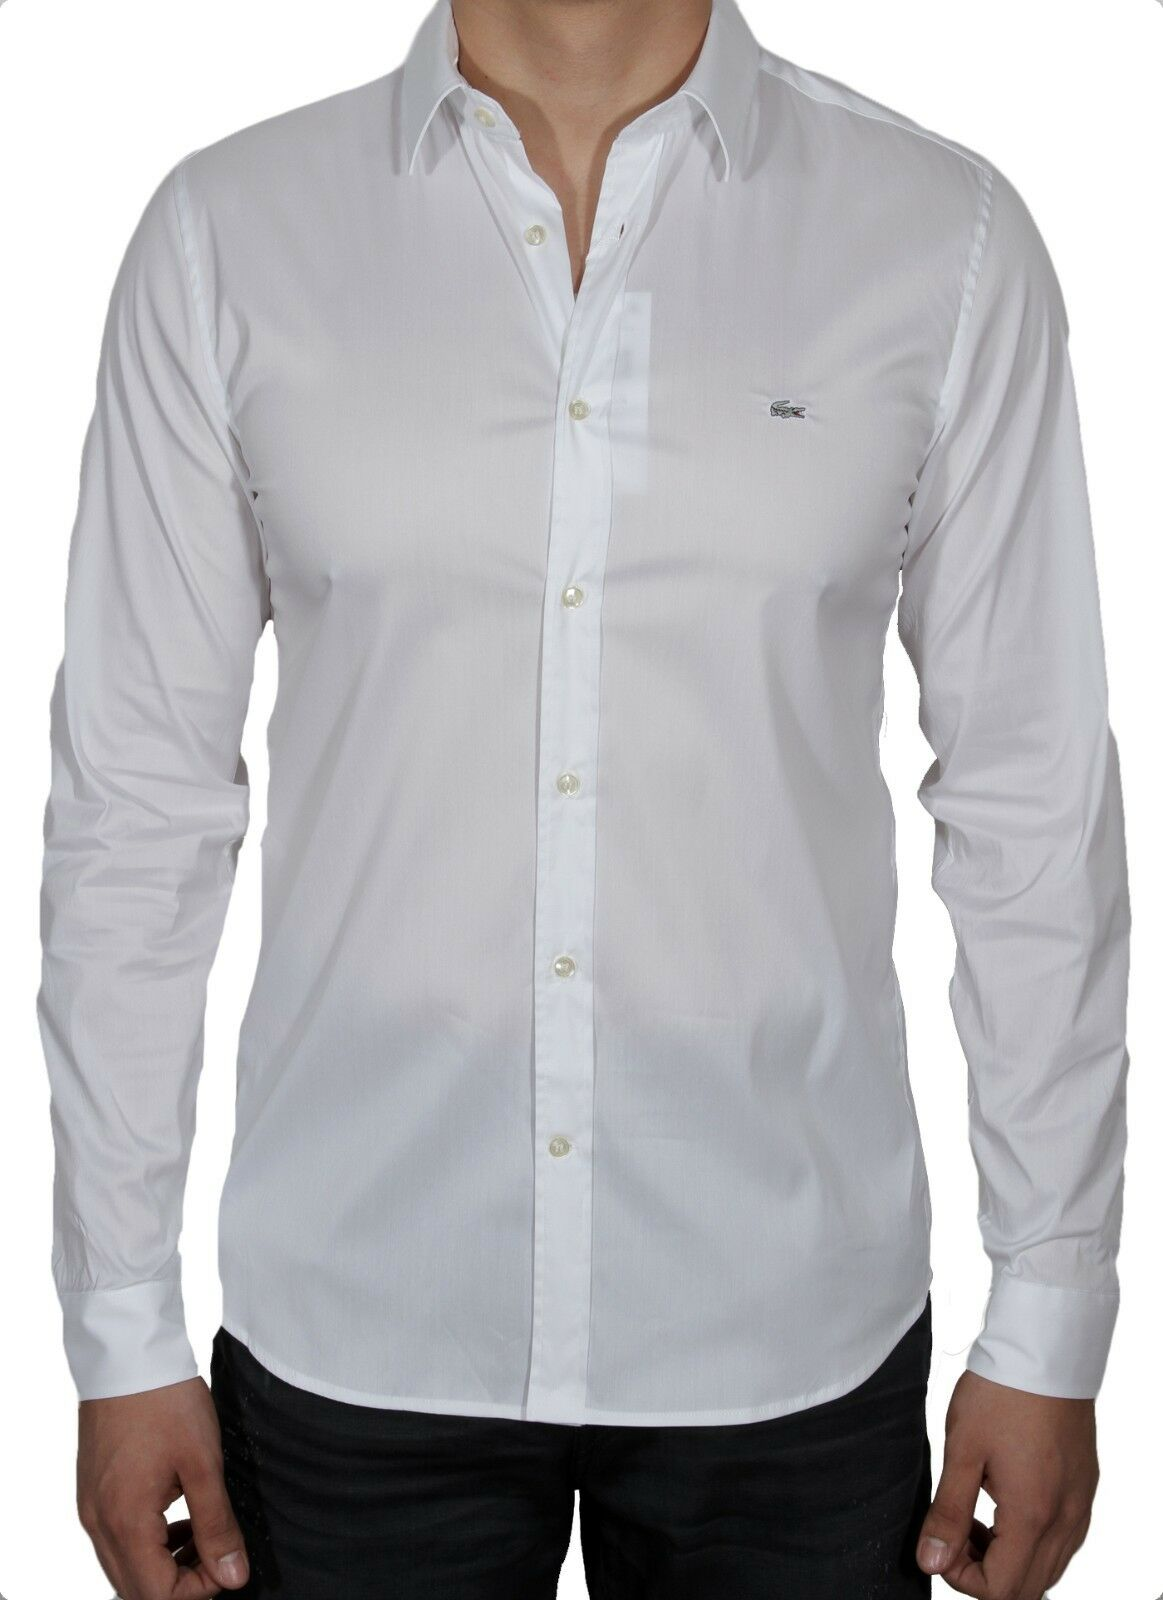 a6fc354b93 Lacoste Men's Slim Fit Stretch Cotton poplin Shirt CH2561-51 001 White